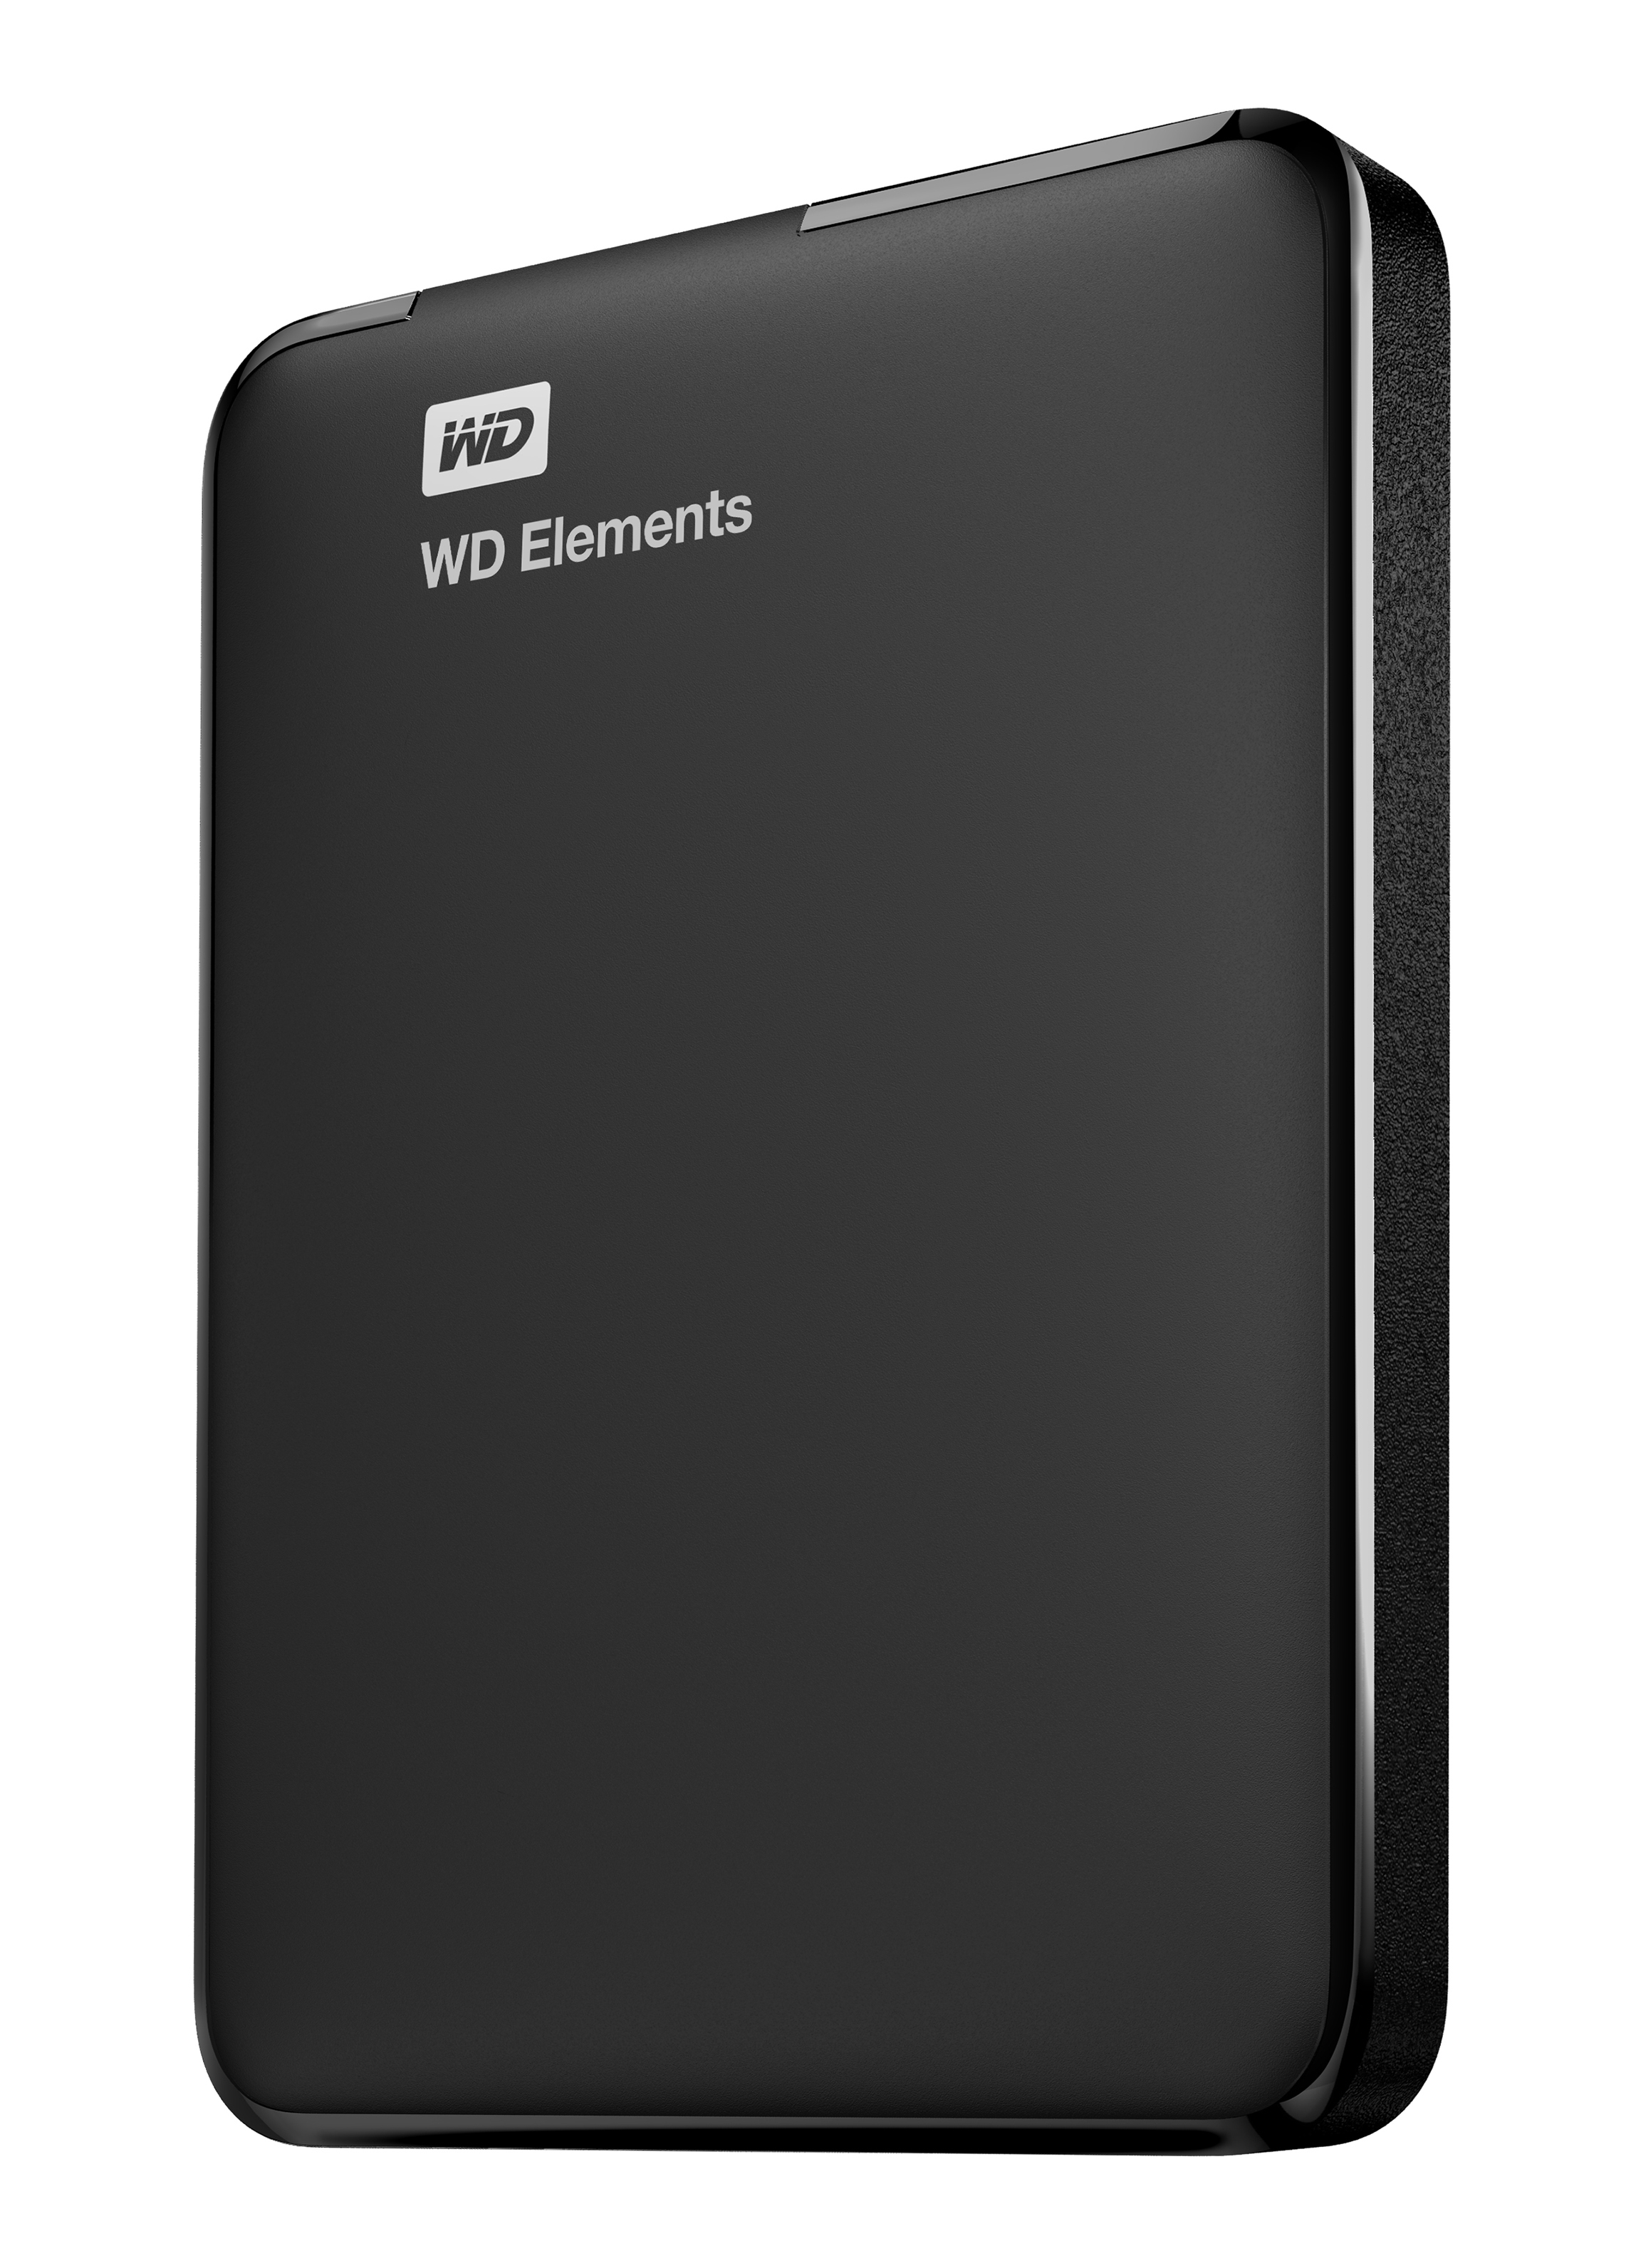 HD W.DIGITAL ELEM. 1TB 2.5 USB 3.0